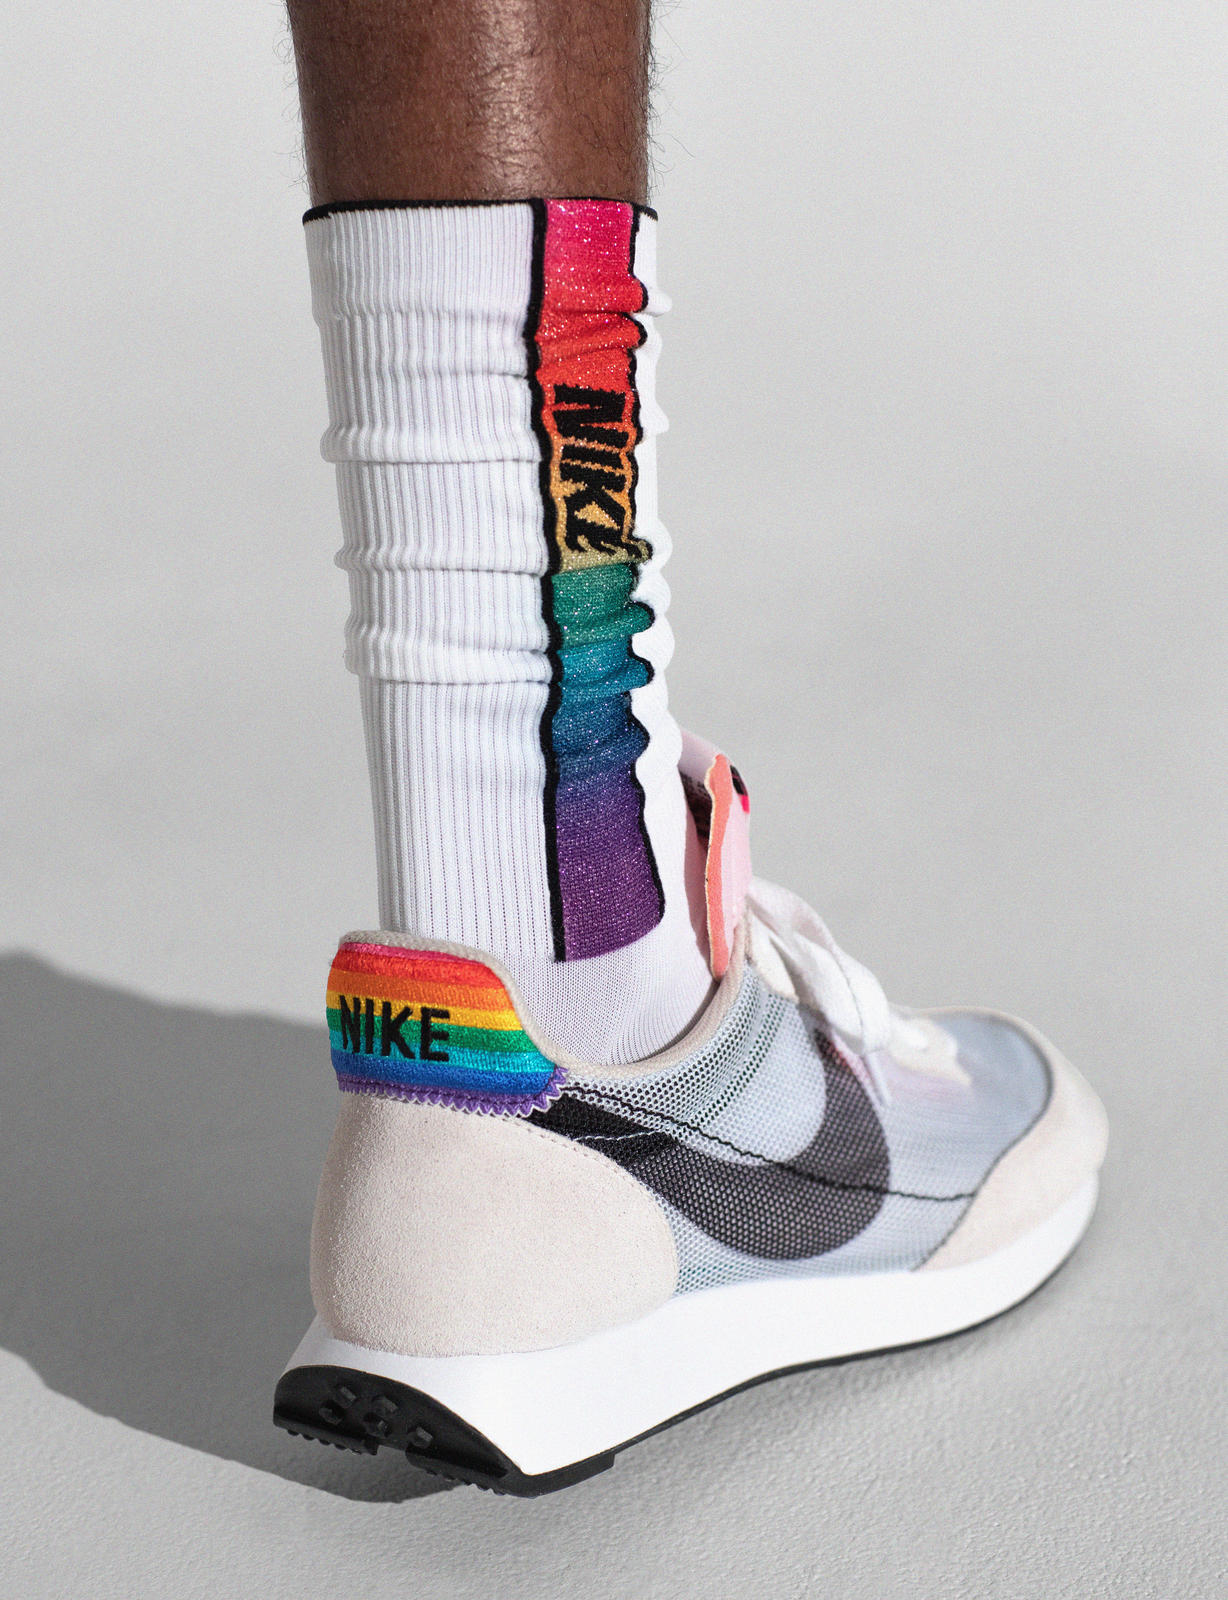 Nike-BETRUE-2019-Collection-19_88115.jpg